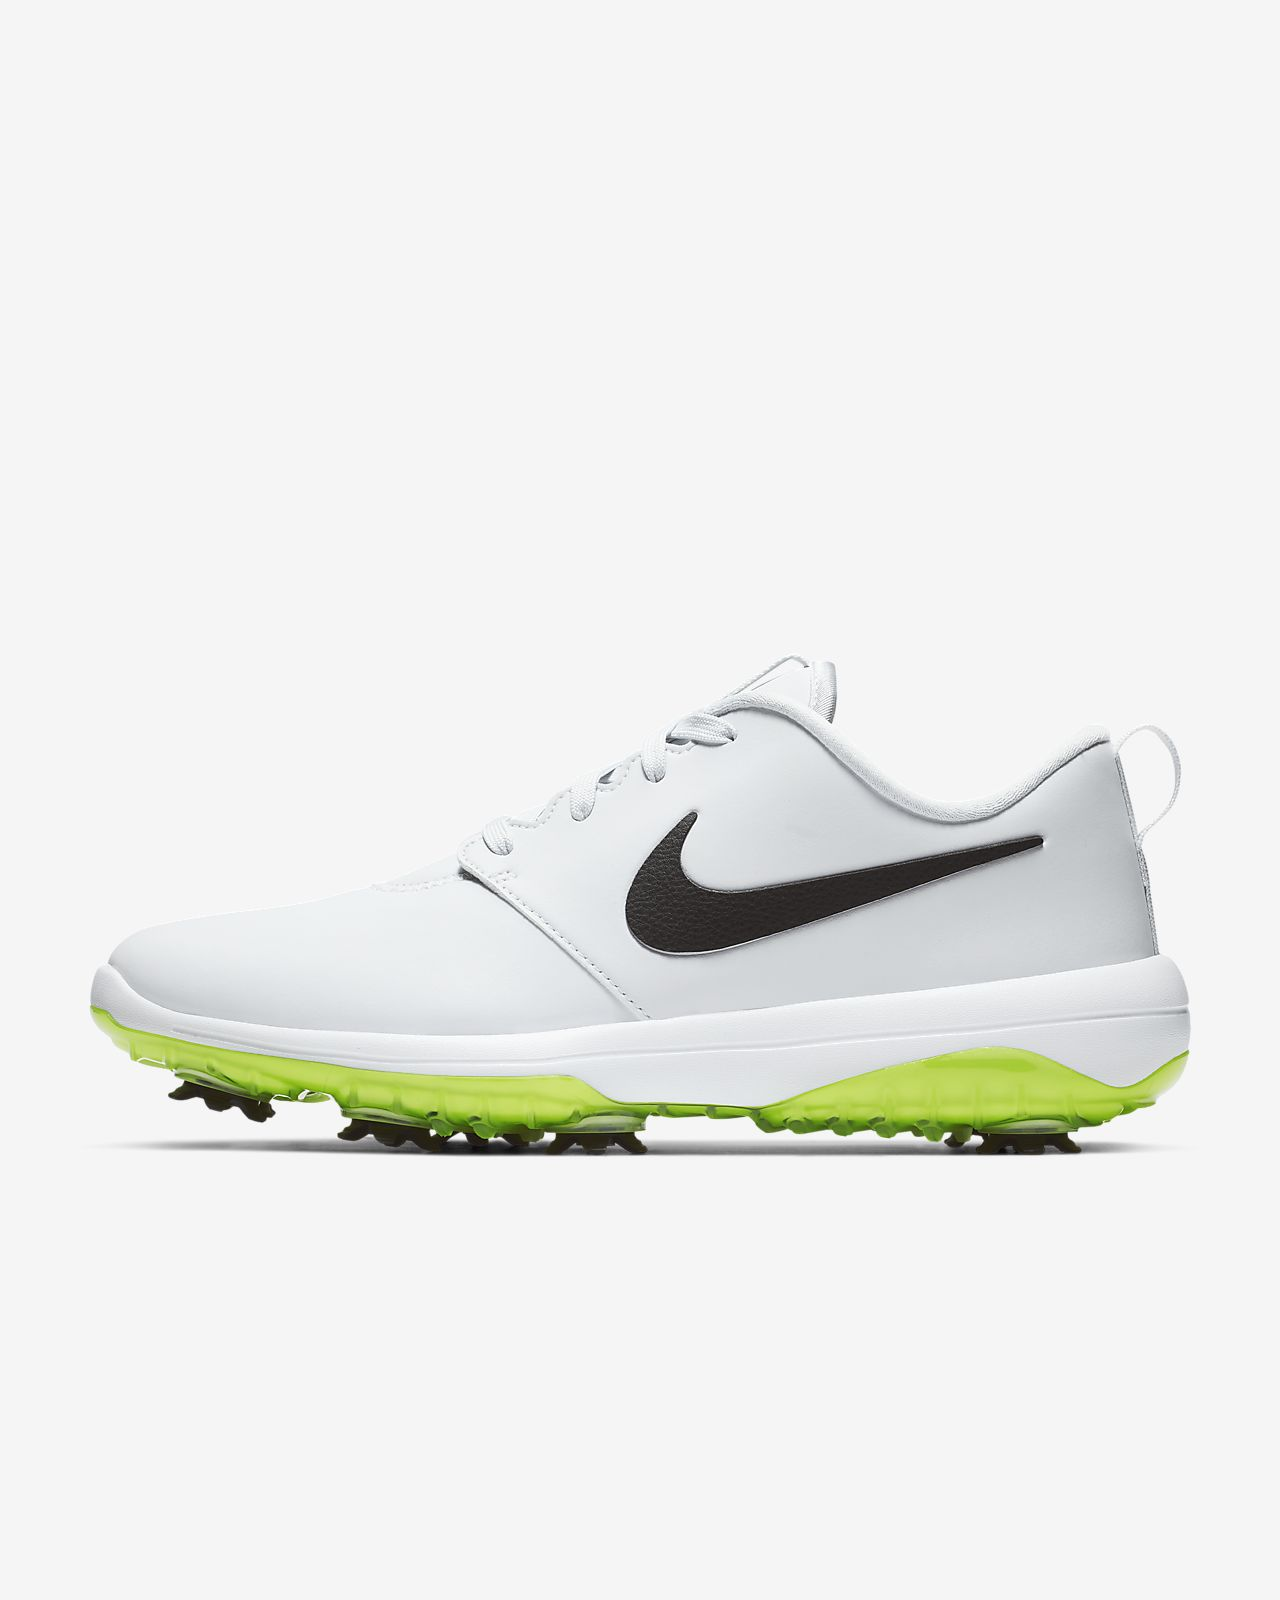 meet 894e6 7dee8 ... Nike Roshe G Tour Men s Golf Shoe